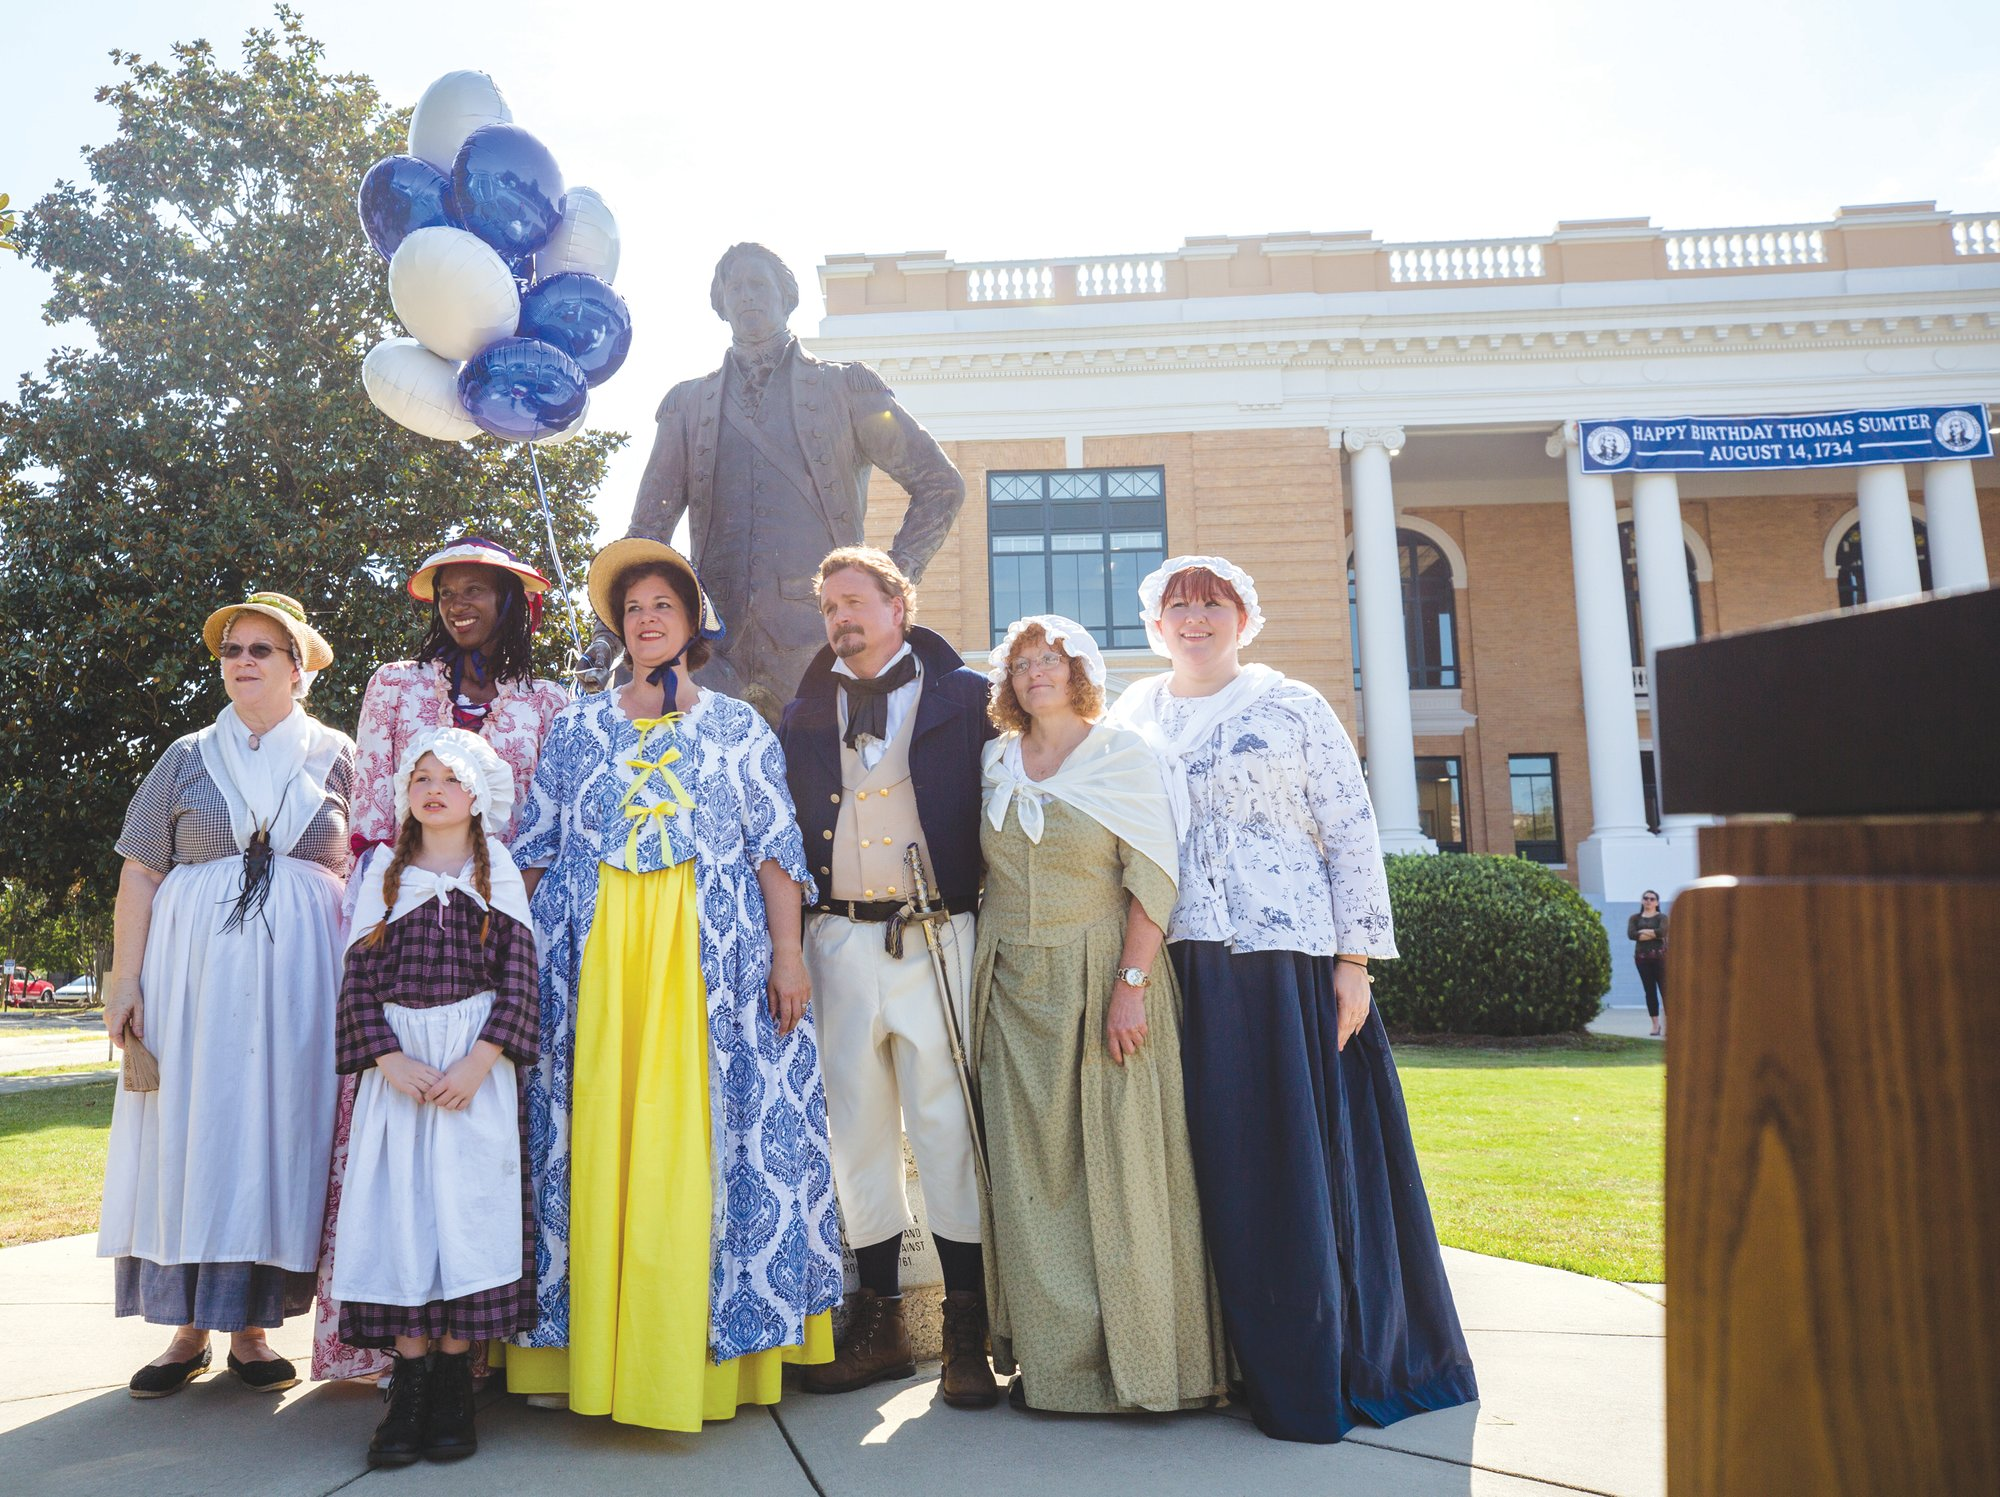 A group in period clothing stands with the statue of Thomas Sumter on Wednesday.